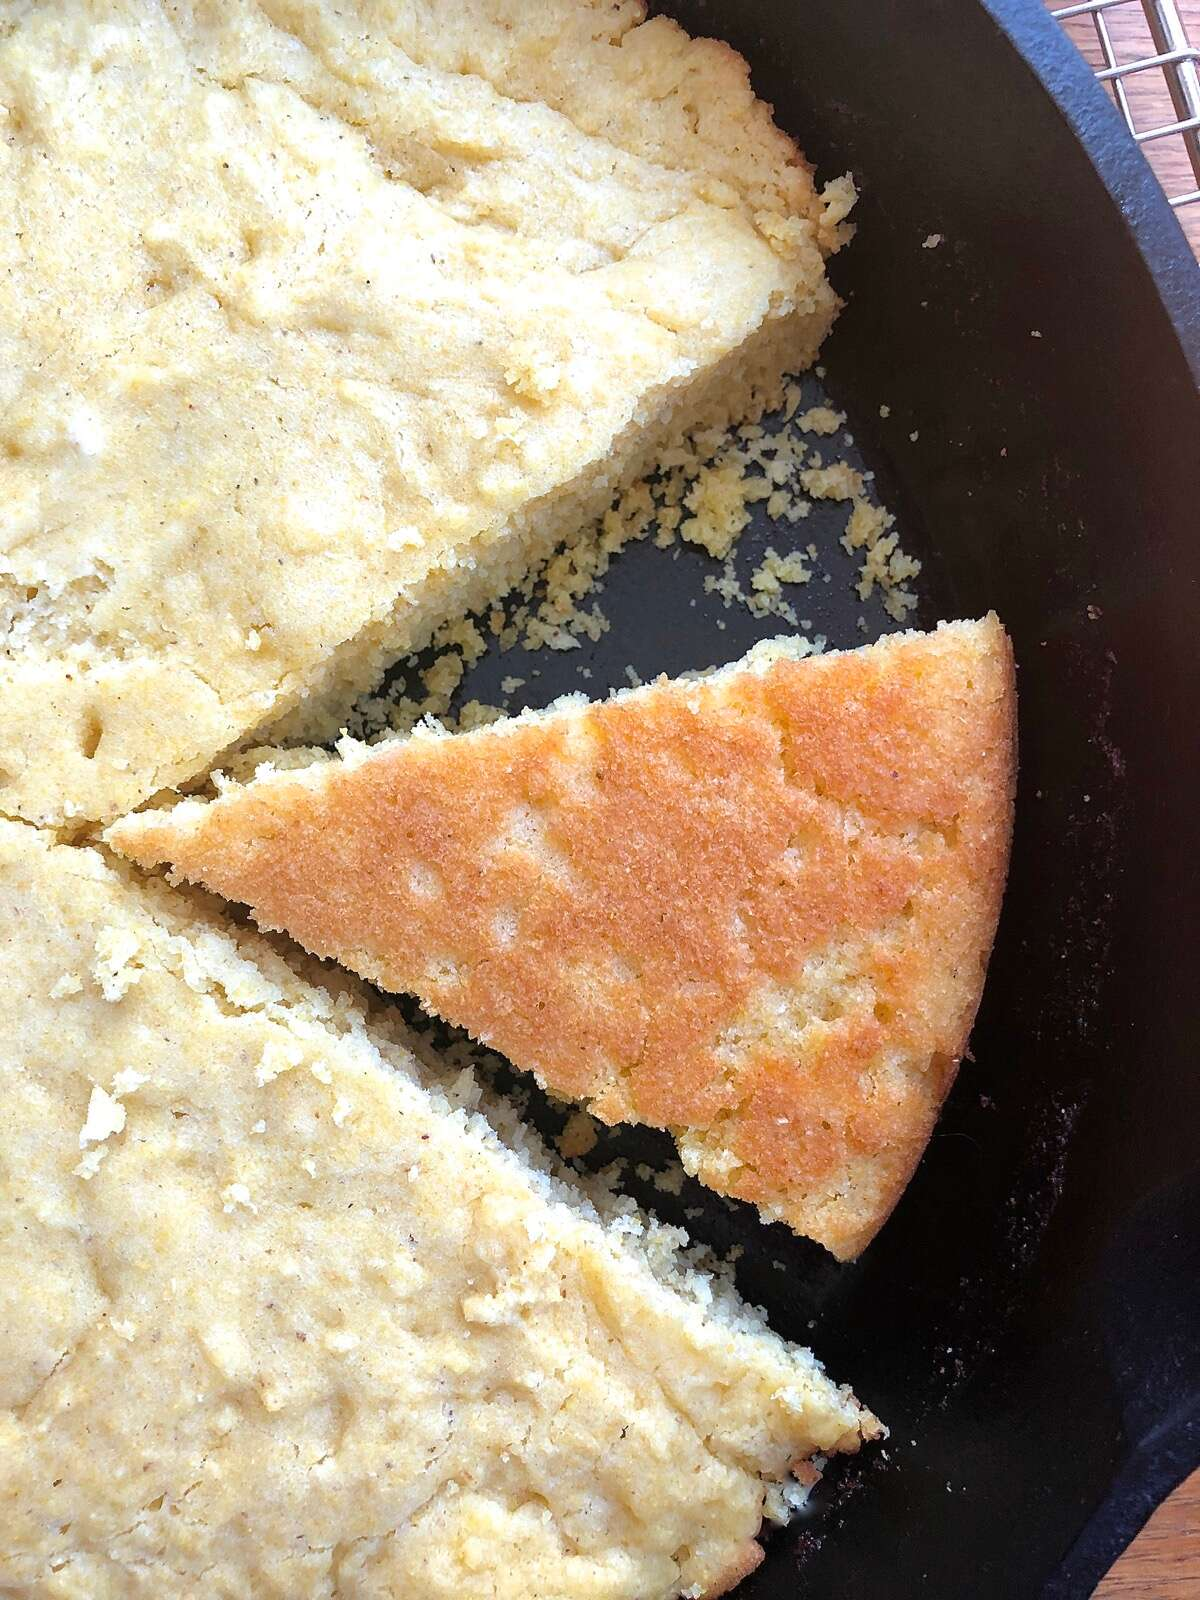 A wedge of baked cornbread turned over in a cast-iron skillet to show its golden brown crust.